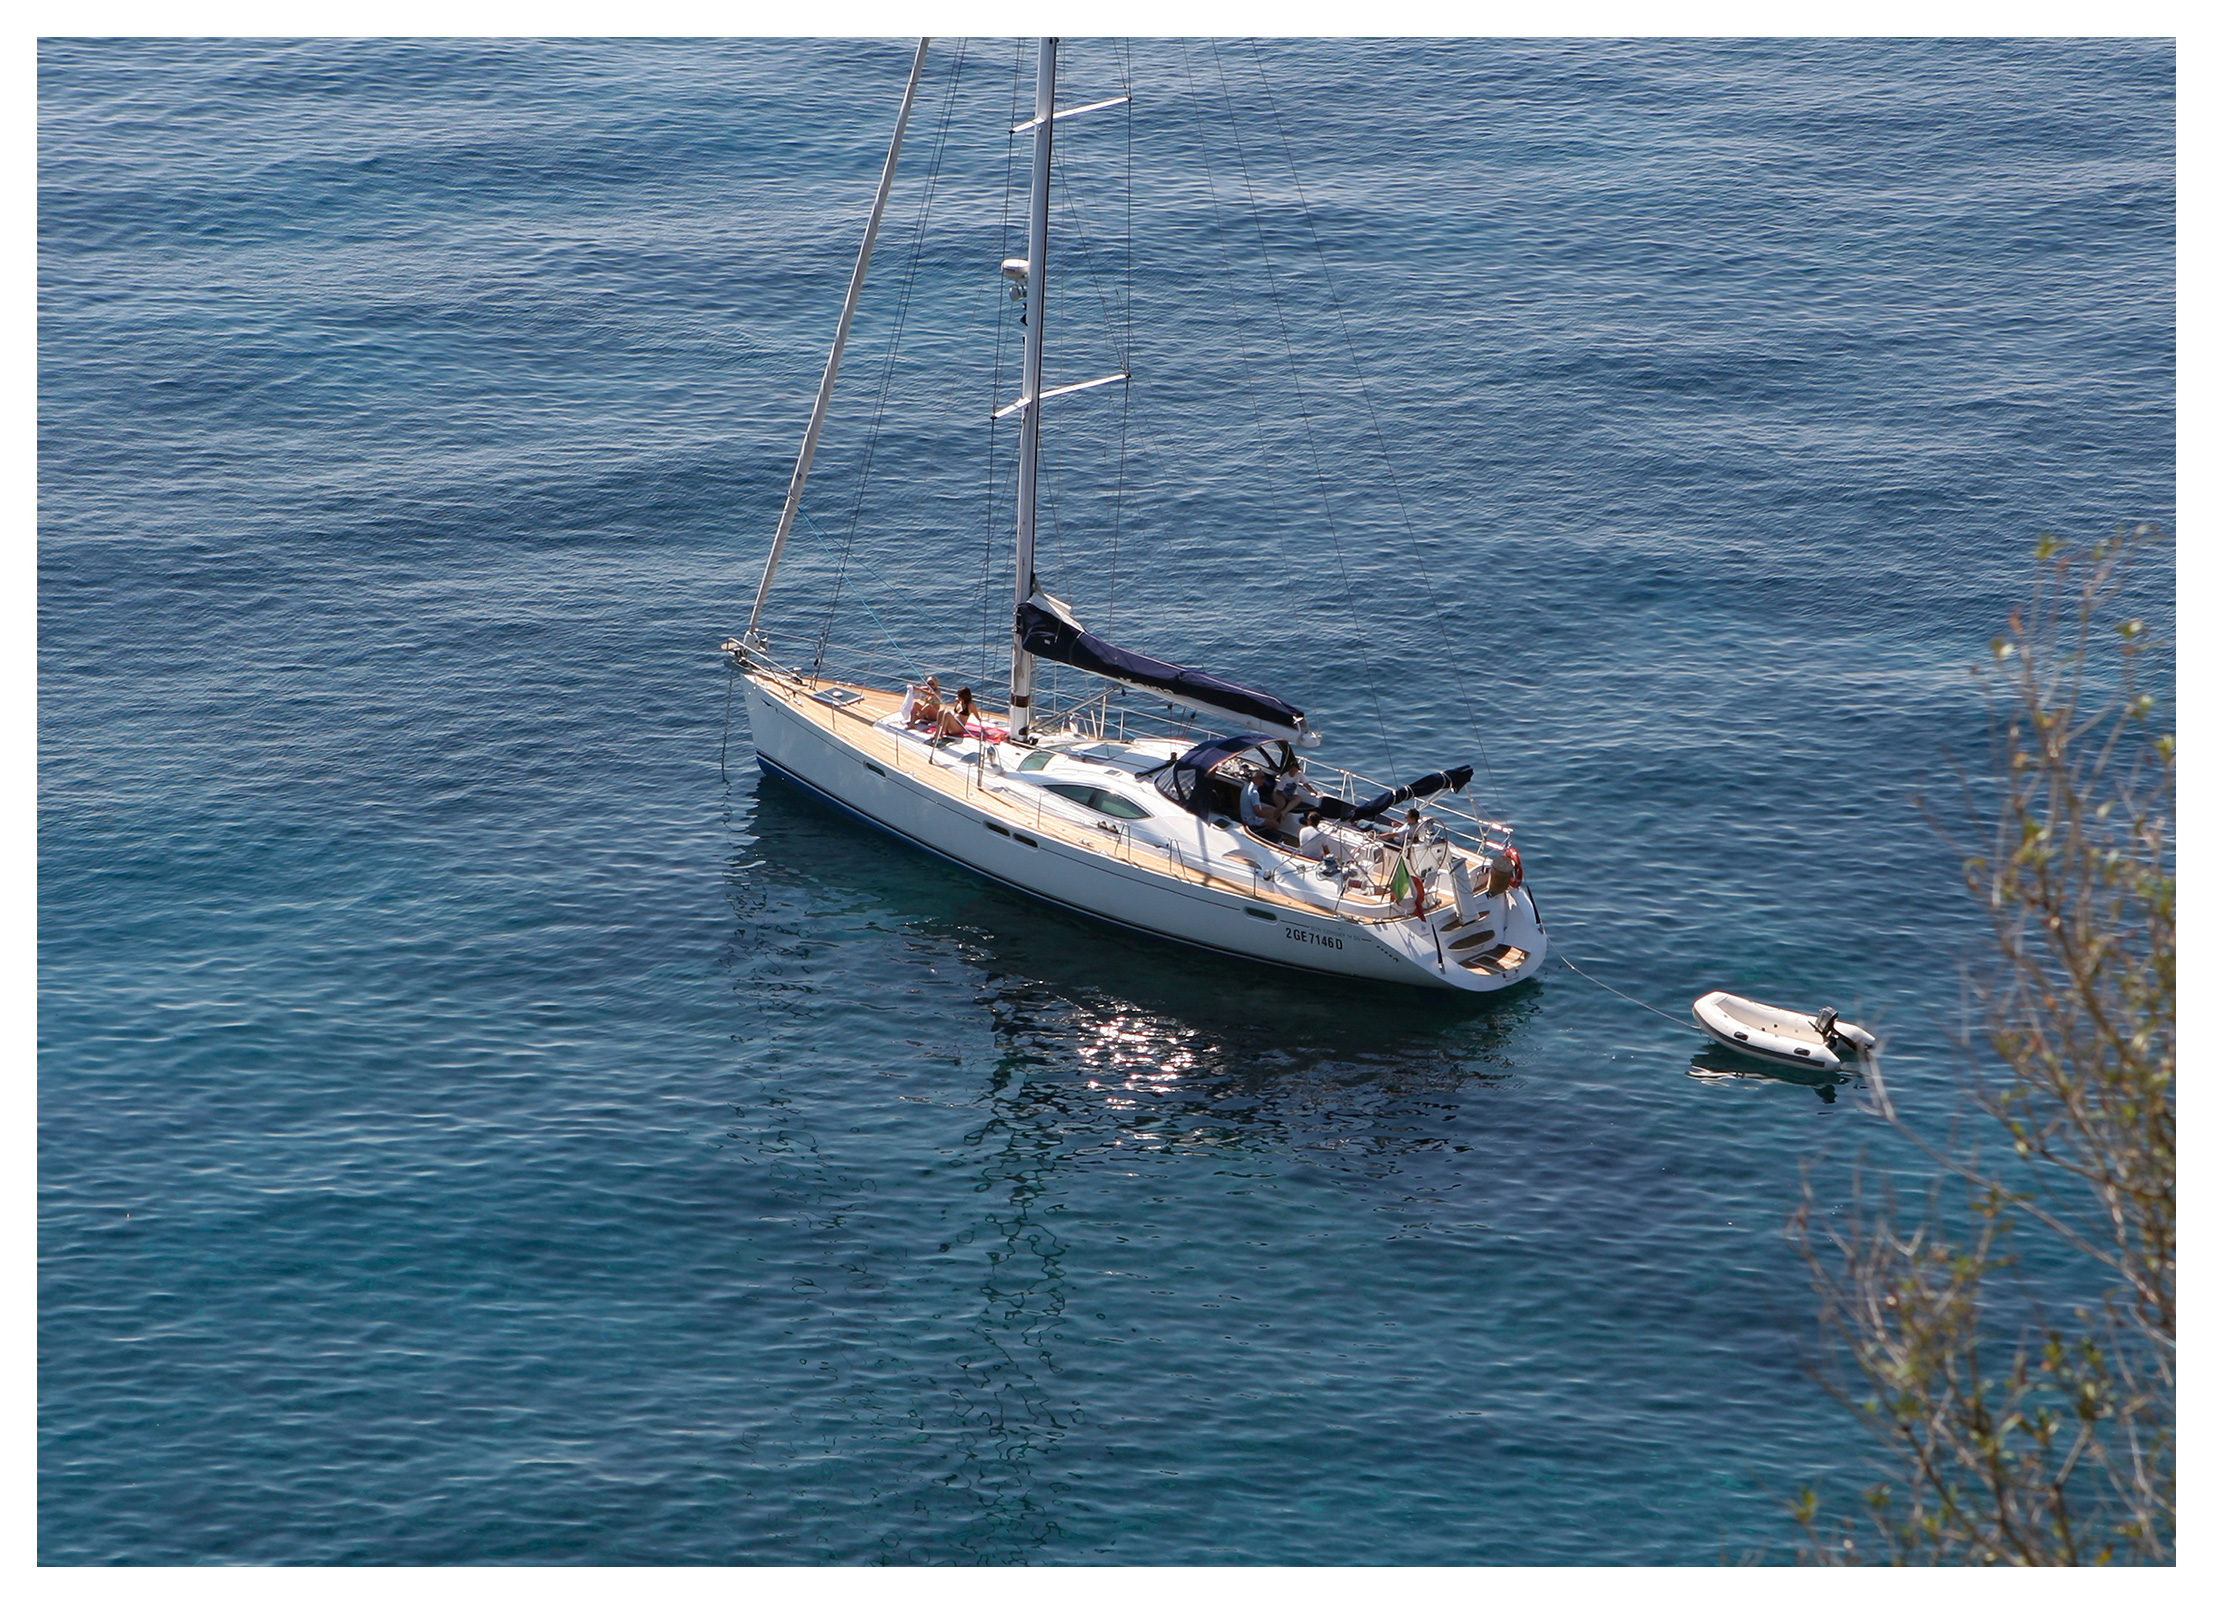 Sailing yacht anchored in clear water off Capo Milazzese, Panarea, Aeolian islands, Sicily